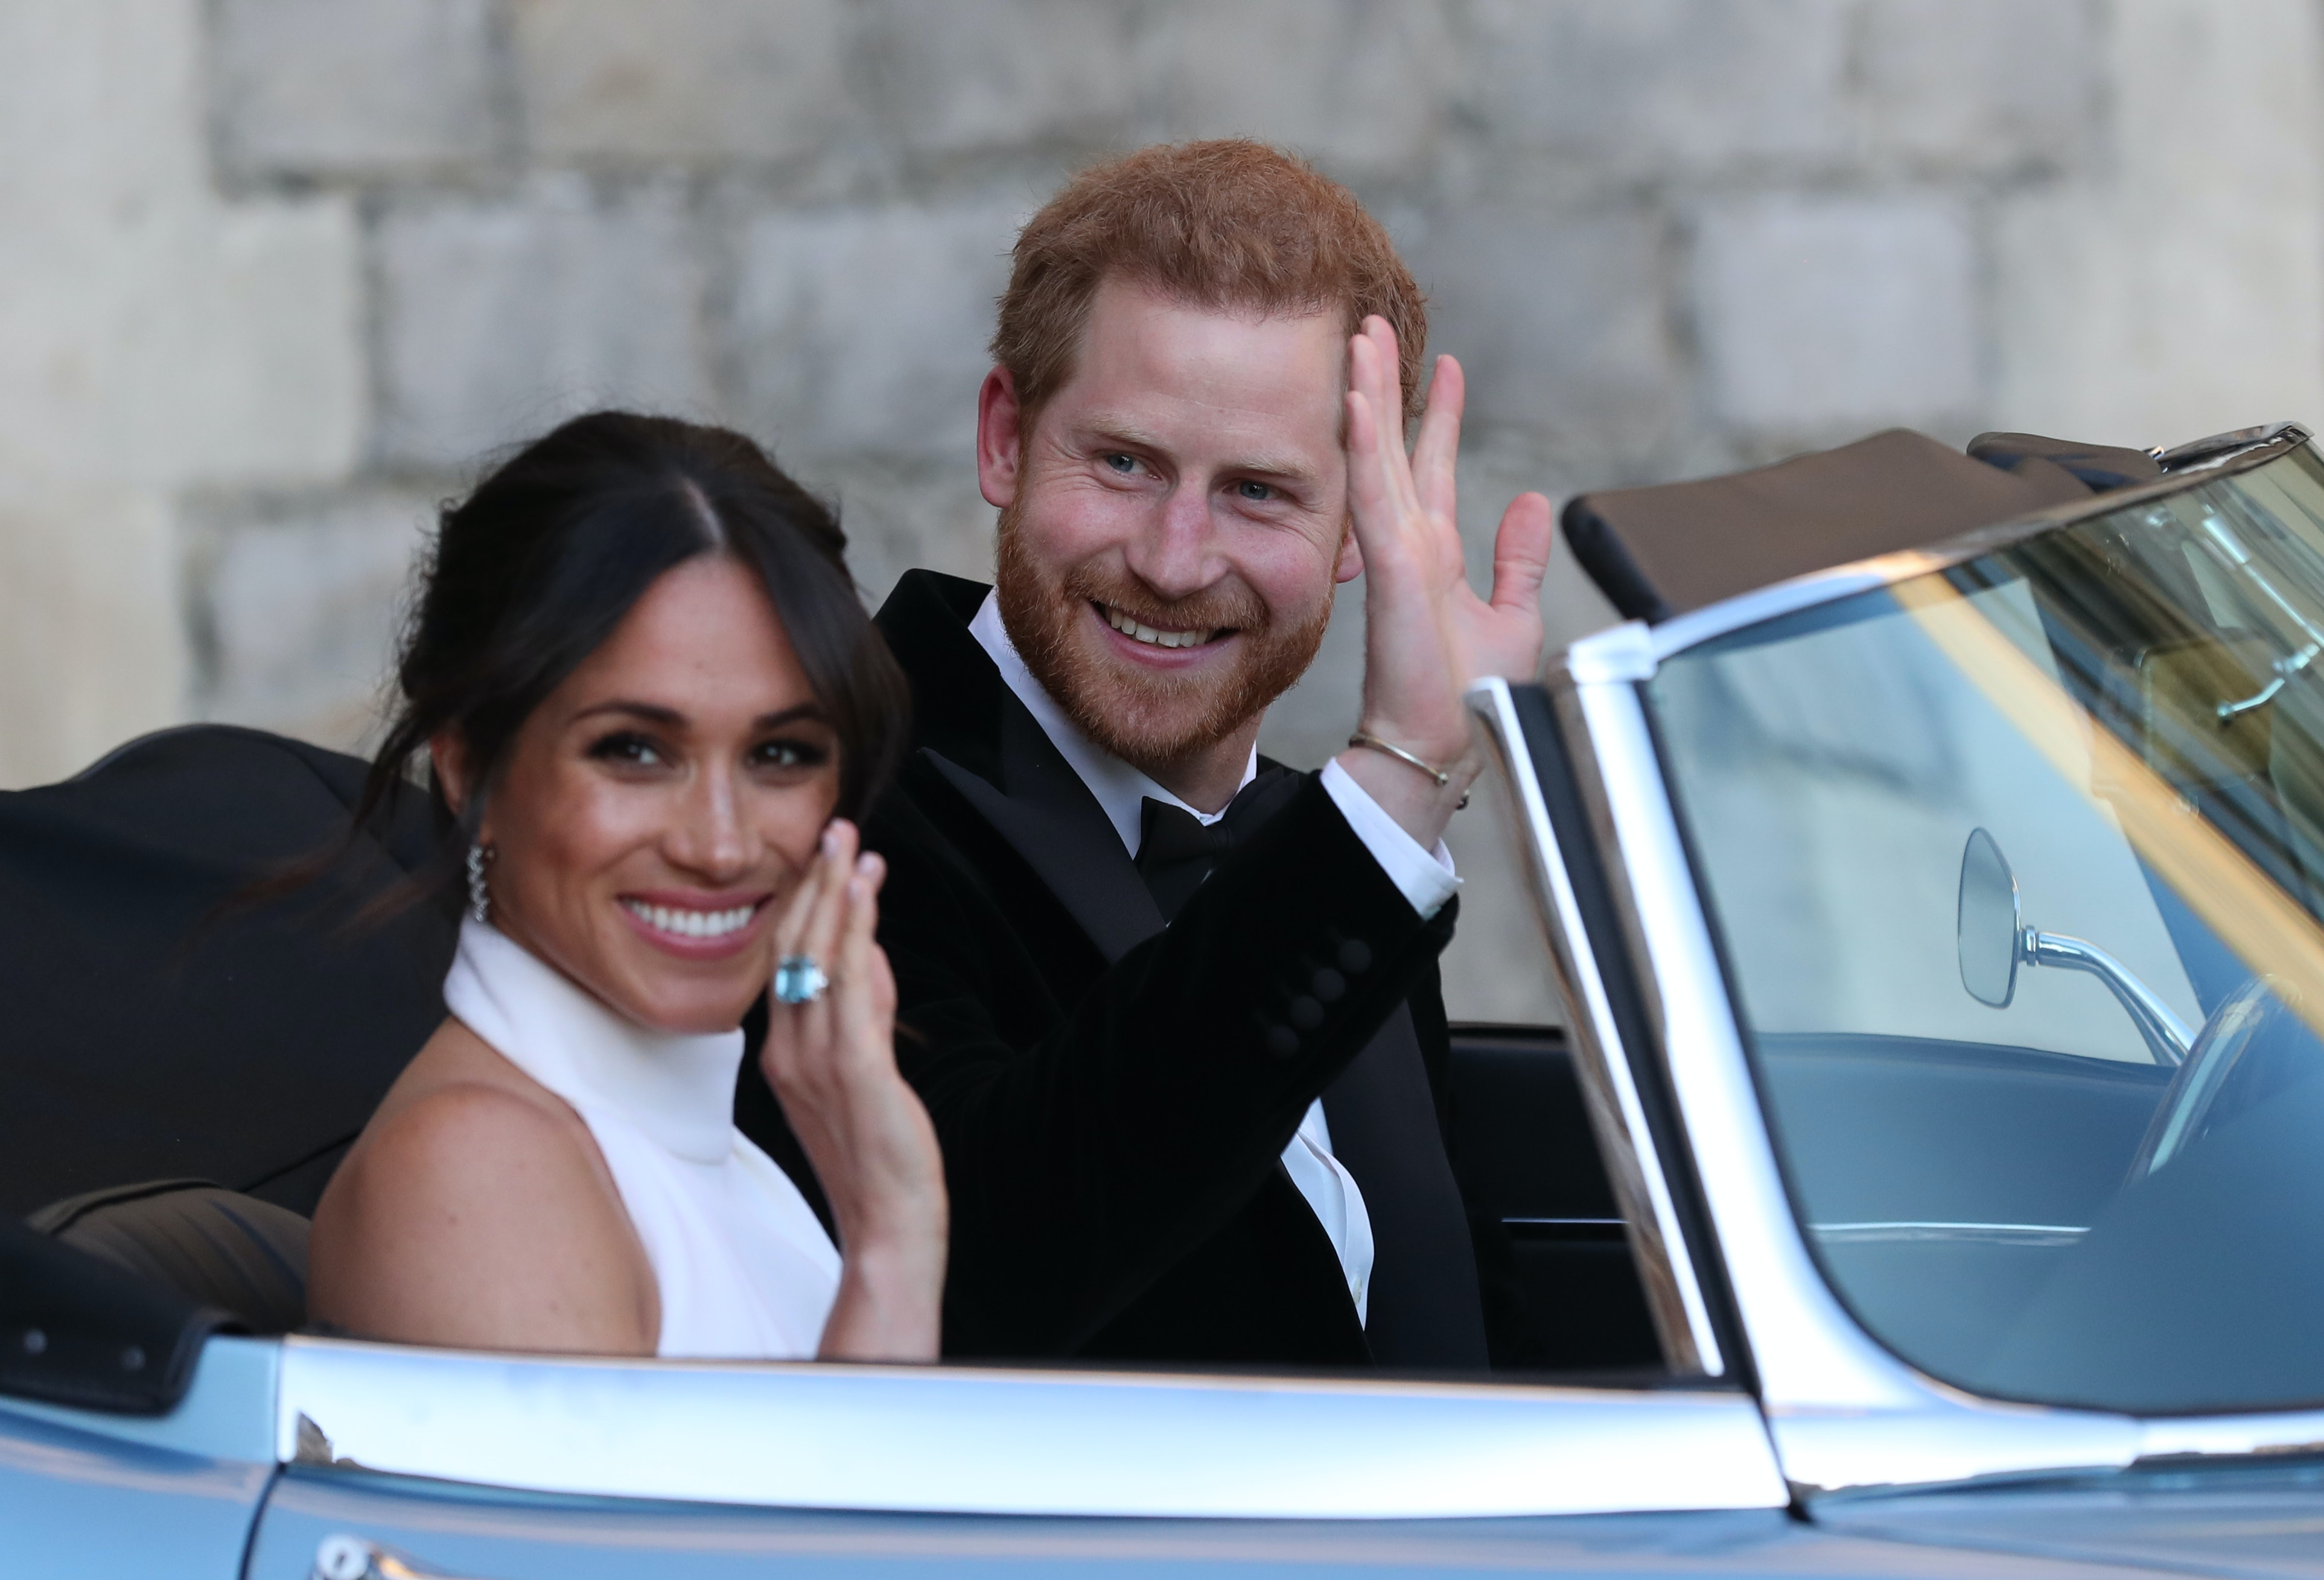 how much is princess diana s aquamarine ring worth meghan markle s choice was both sentimental spectacular https www bustle com p how much is princess dianas aquamarine ring worth meghan markles choice was both sentimental spectacular 9152277